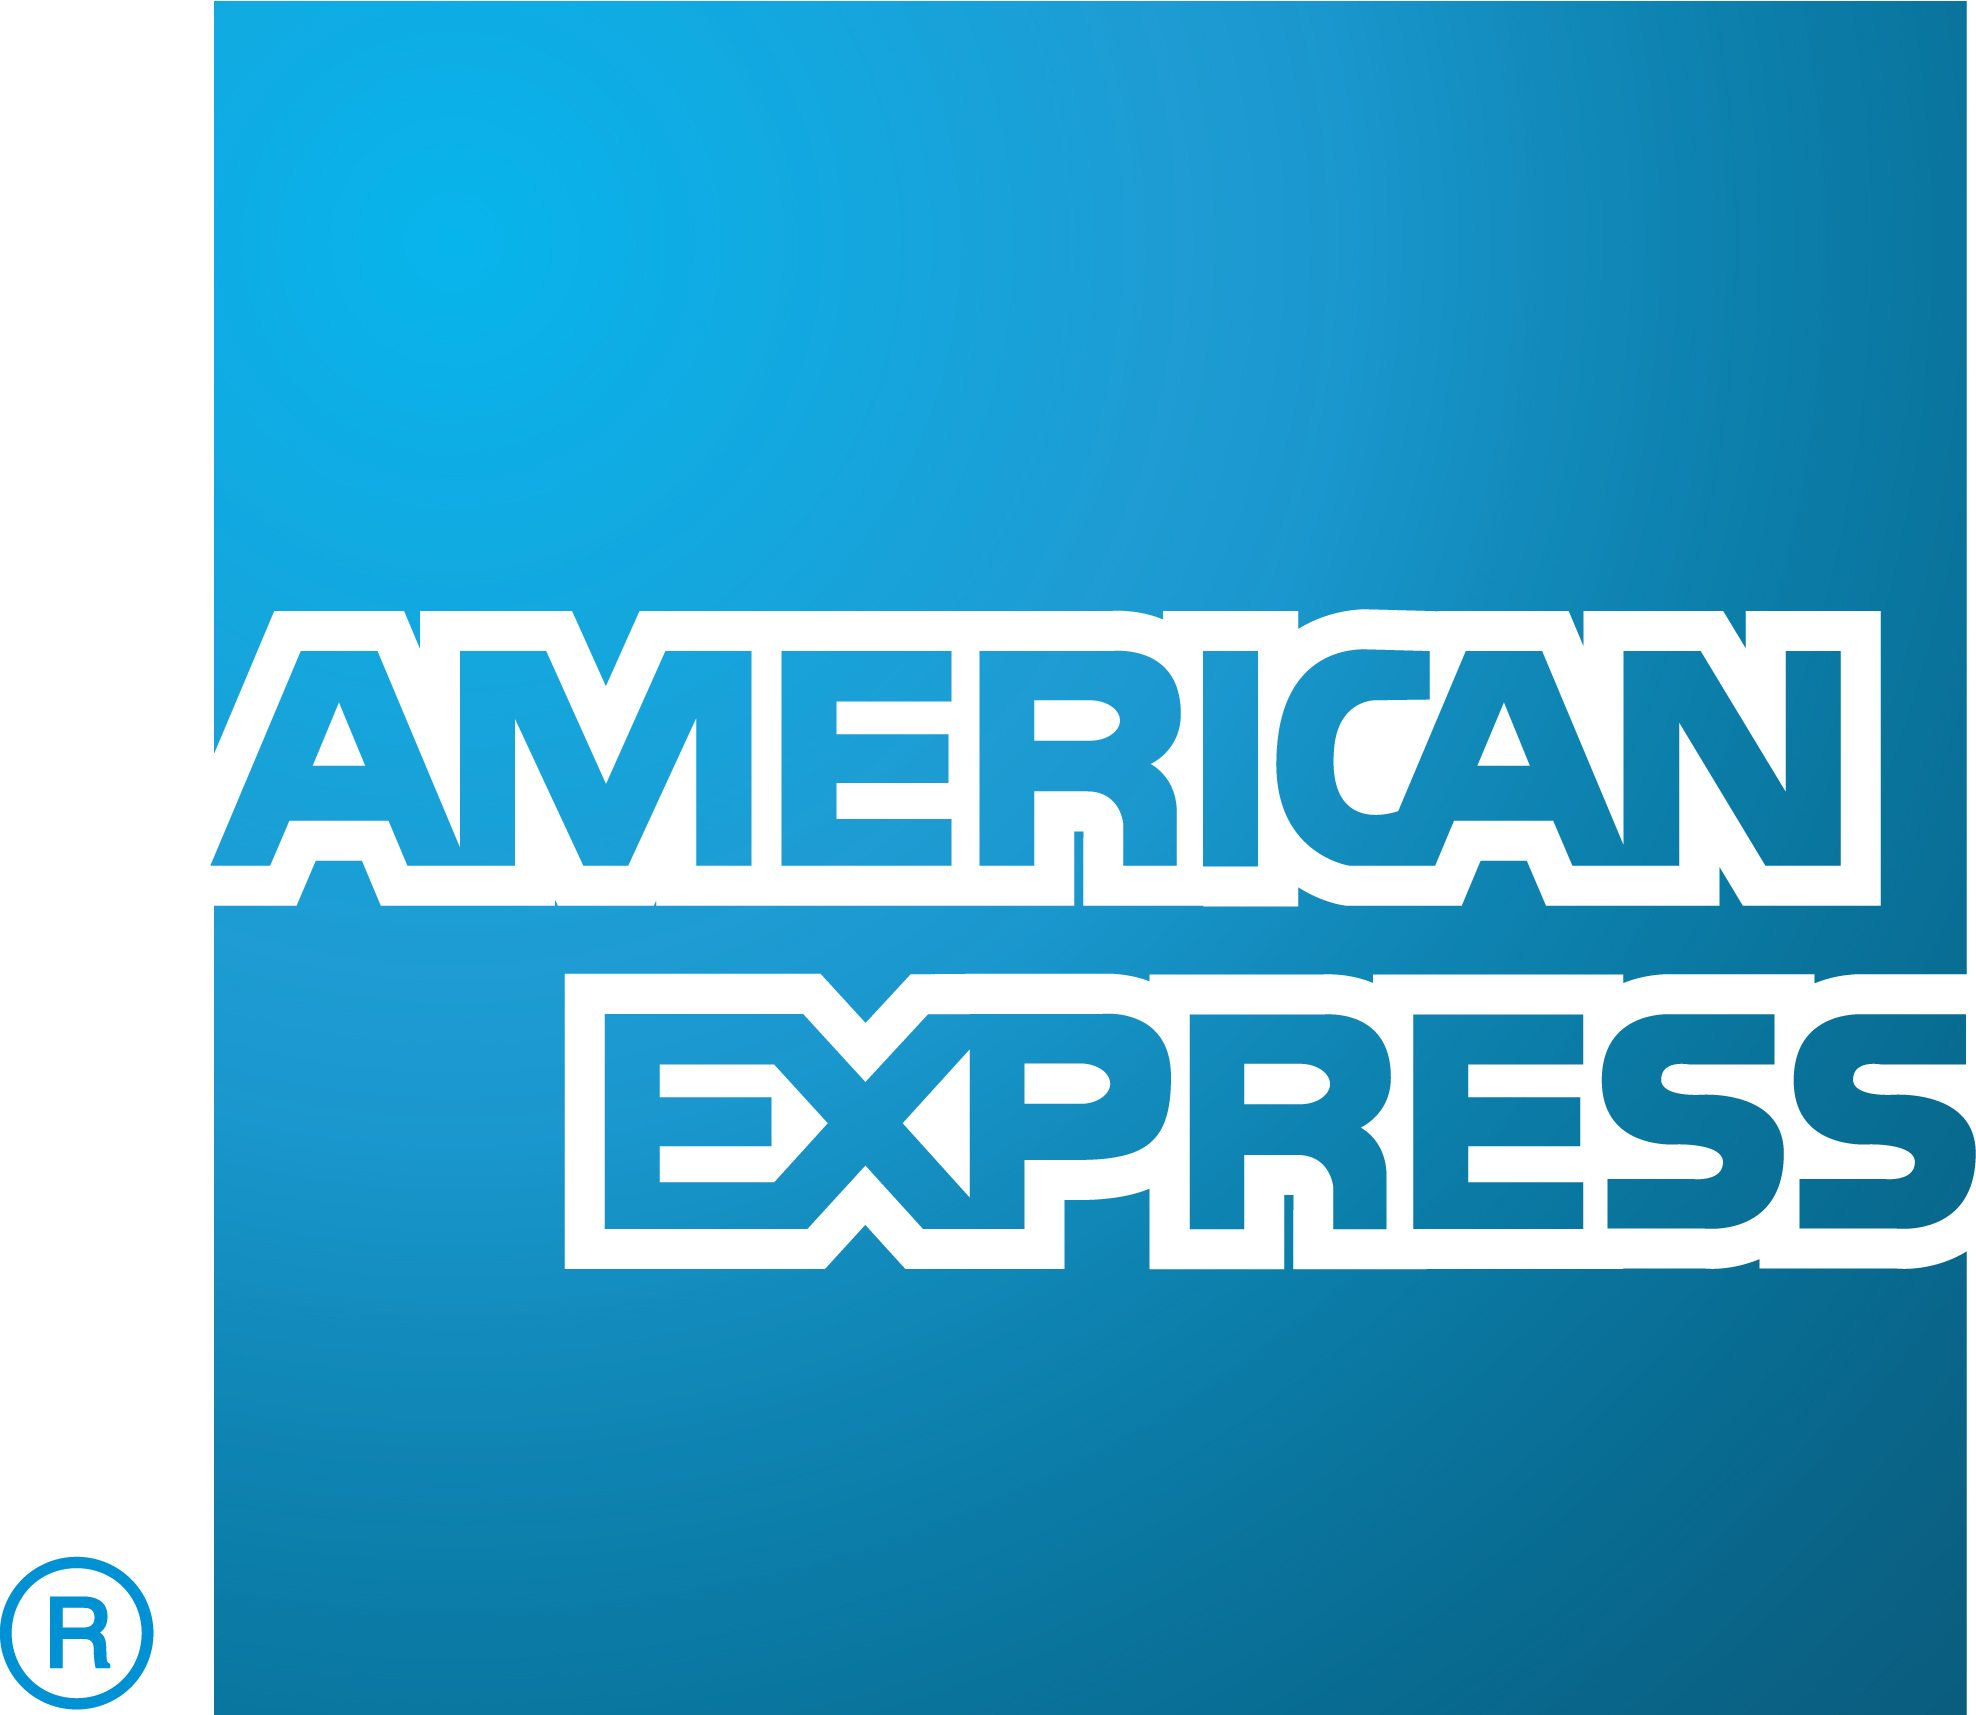 Save yourself From Credit Card issues, Call AMEX Customer Service